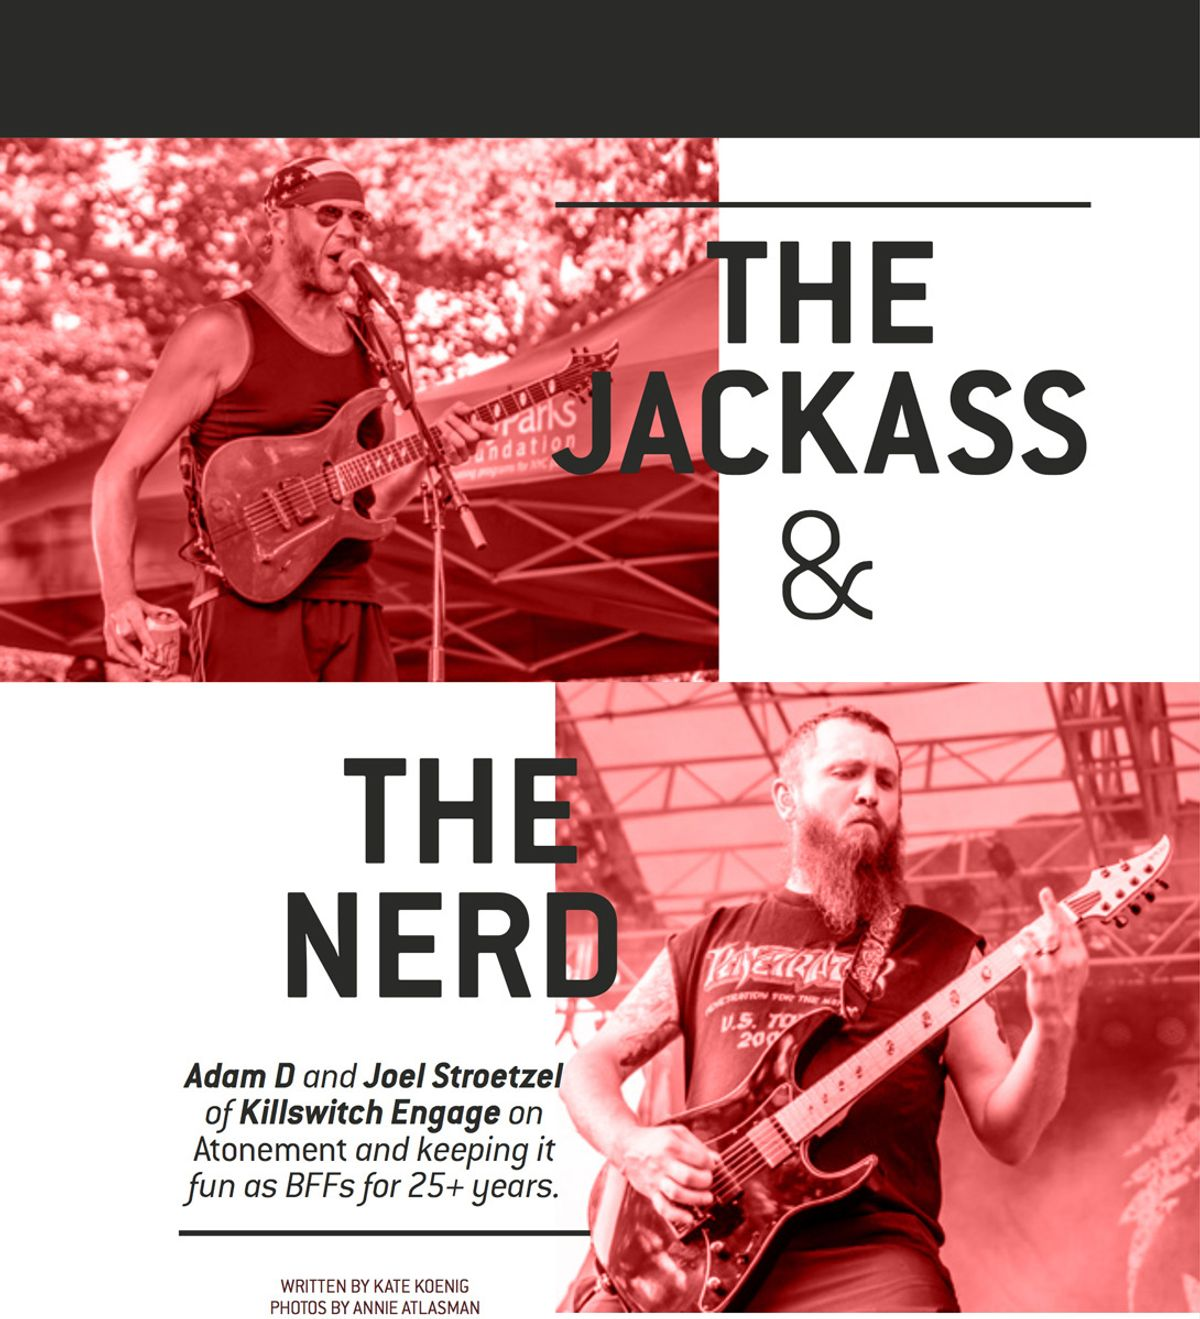 Killswitch Engage: The Jackass & the Nerd